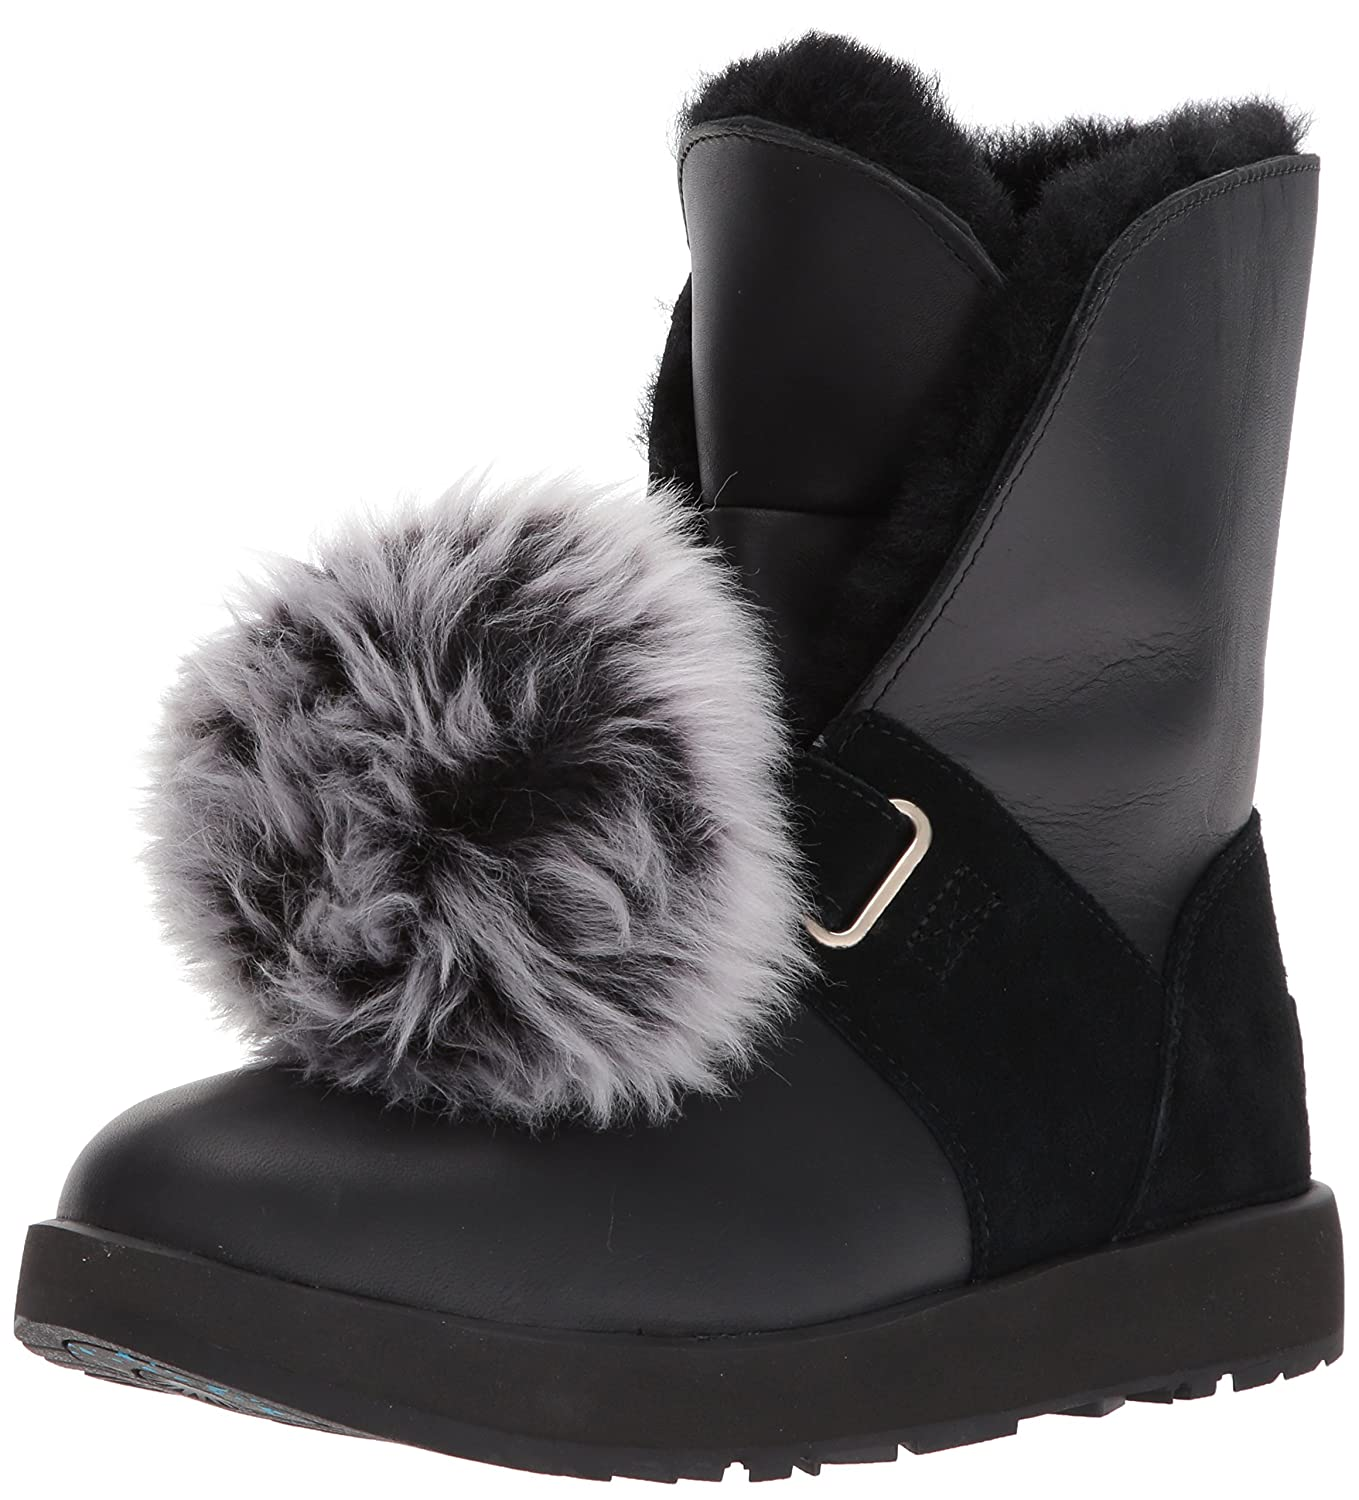 a9504aa4270 UGG Women's Isley Waterproof Winter Boot